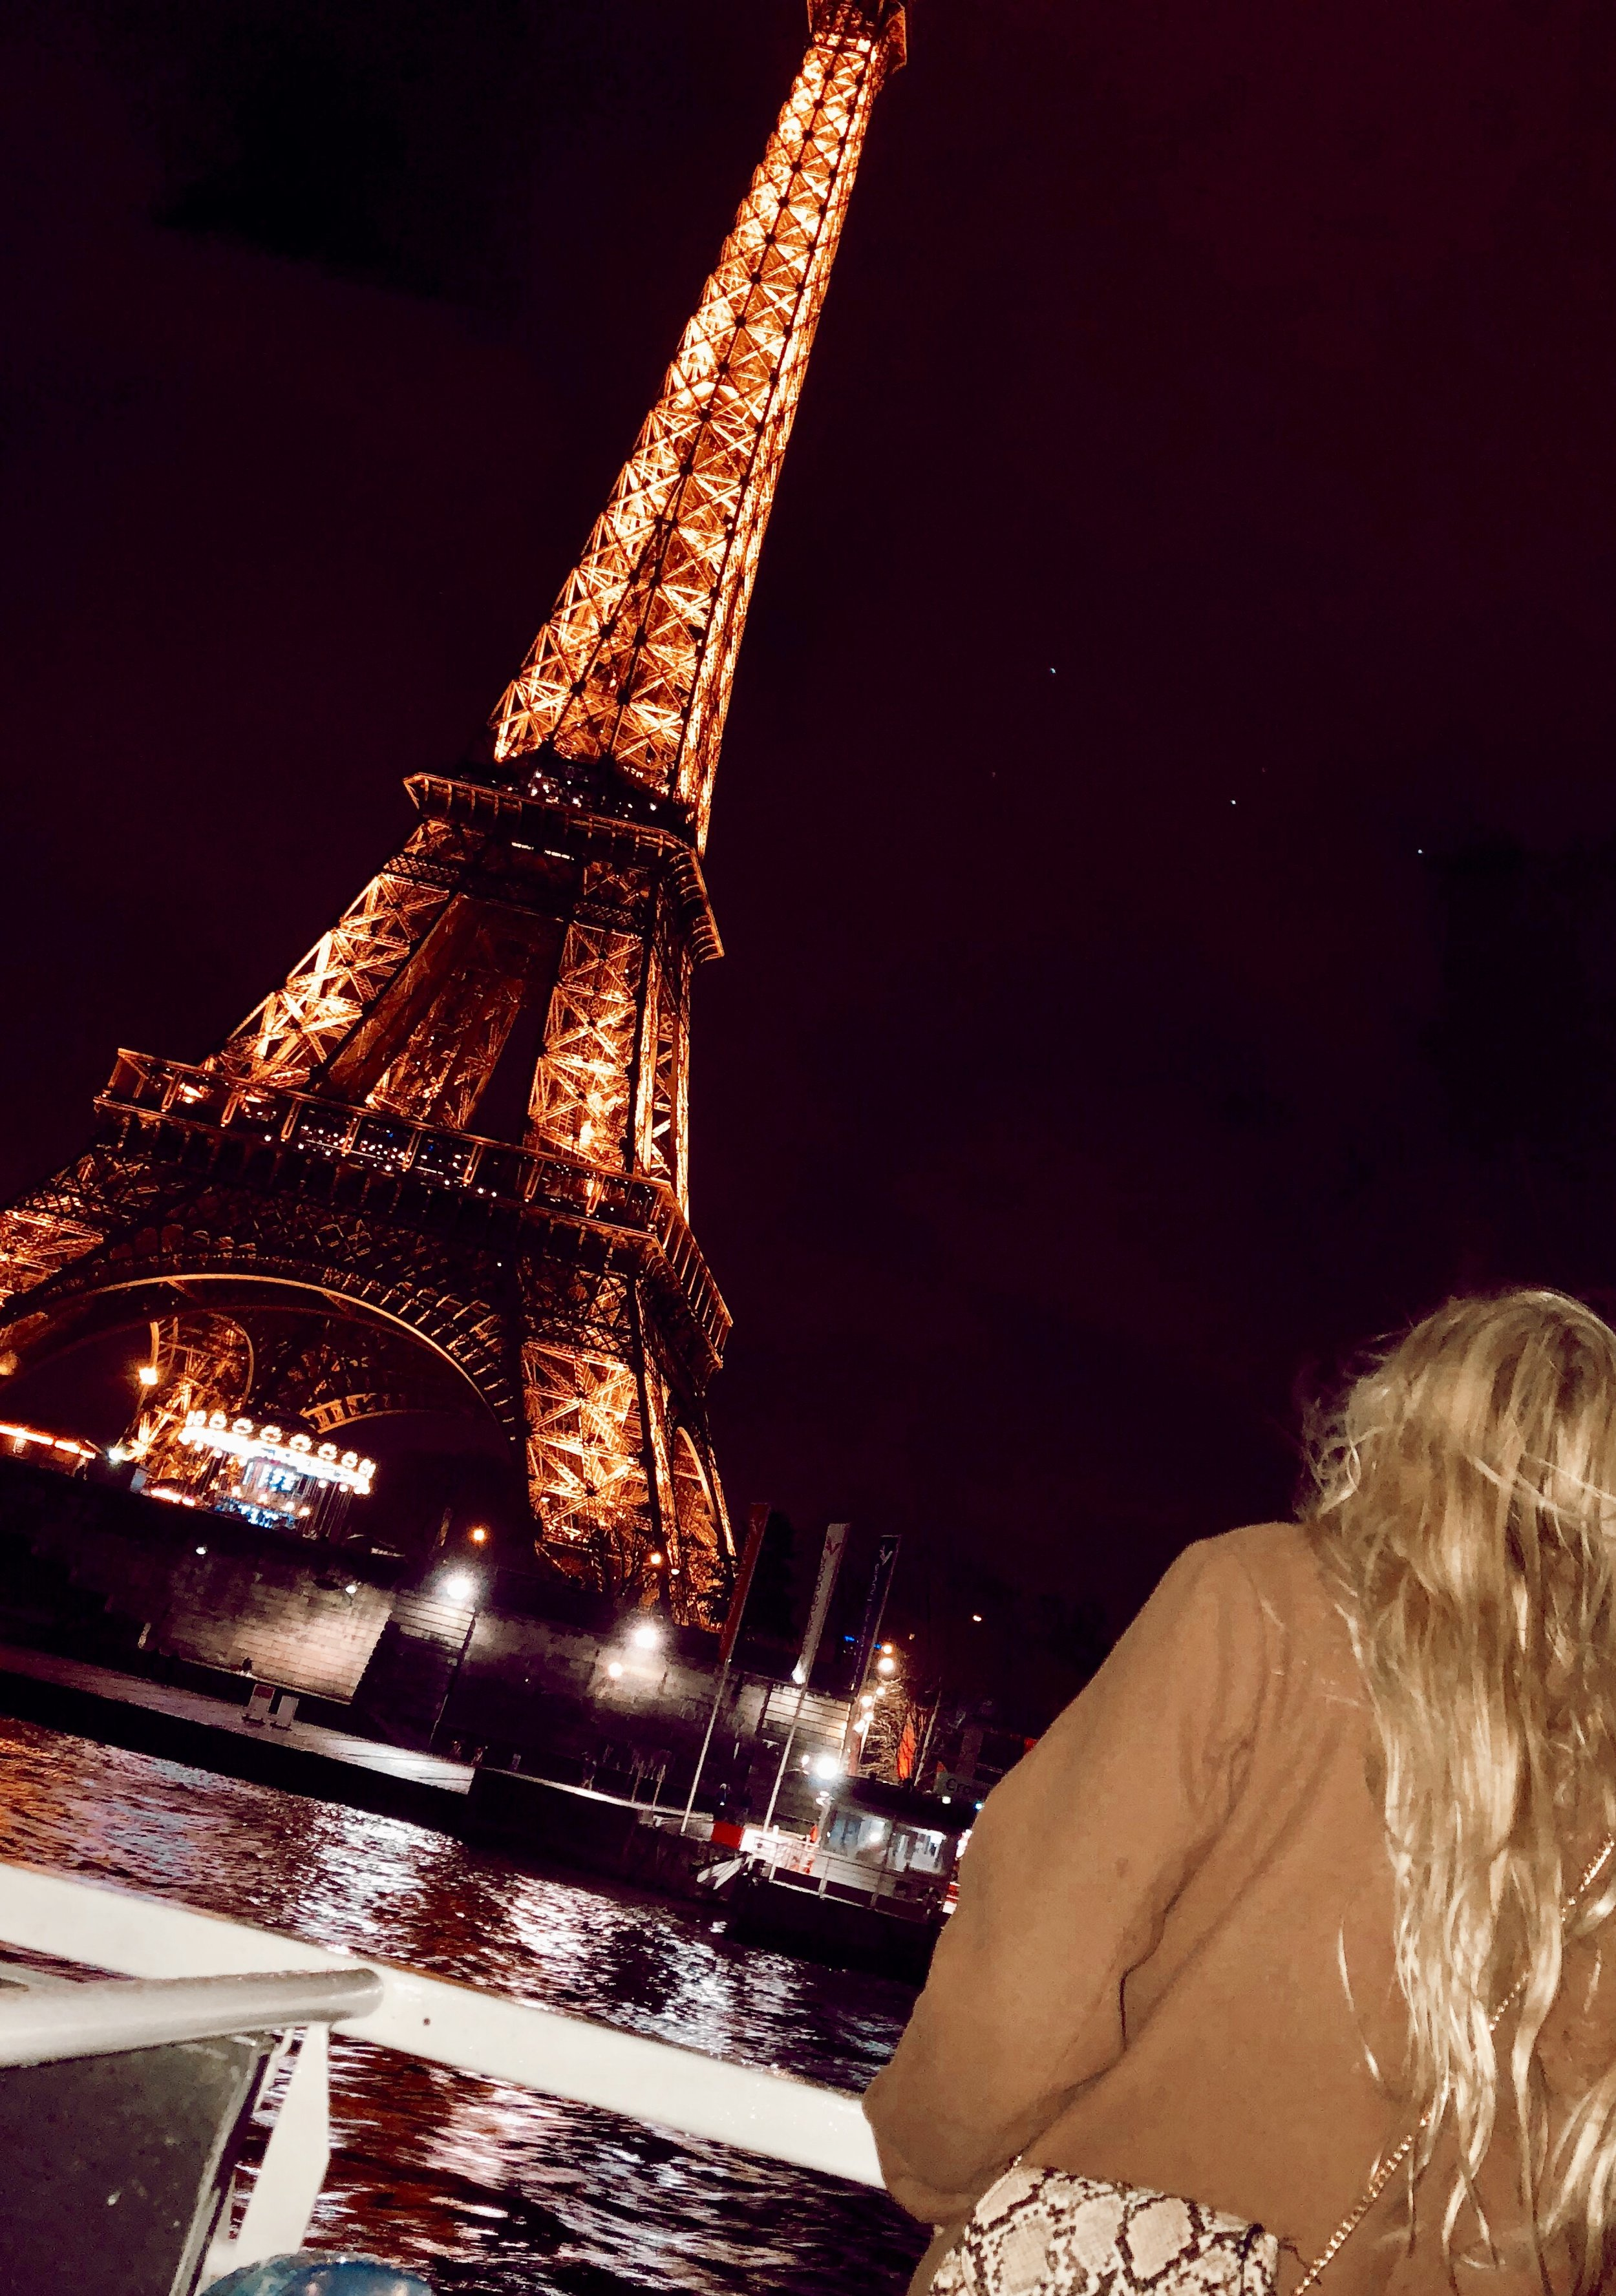 Miranda in front of the Eiffel Tower at night.